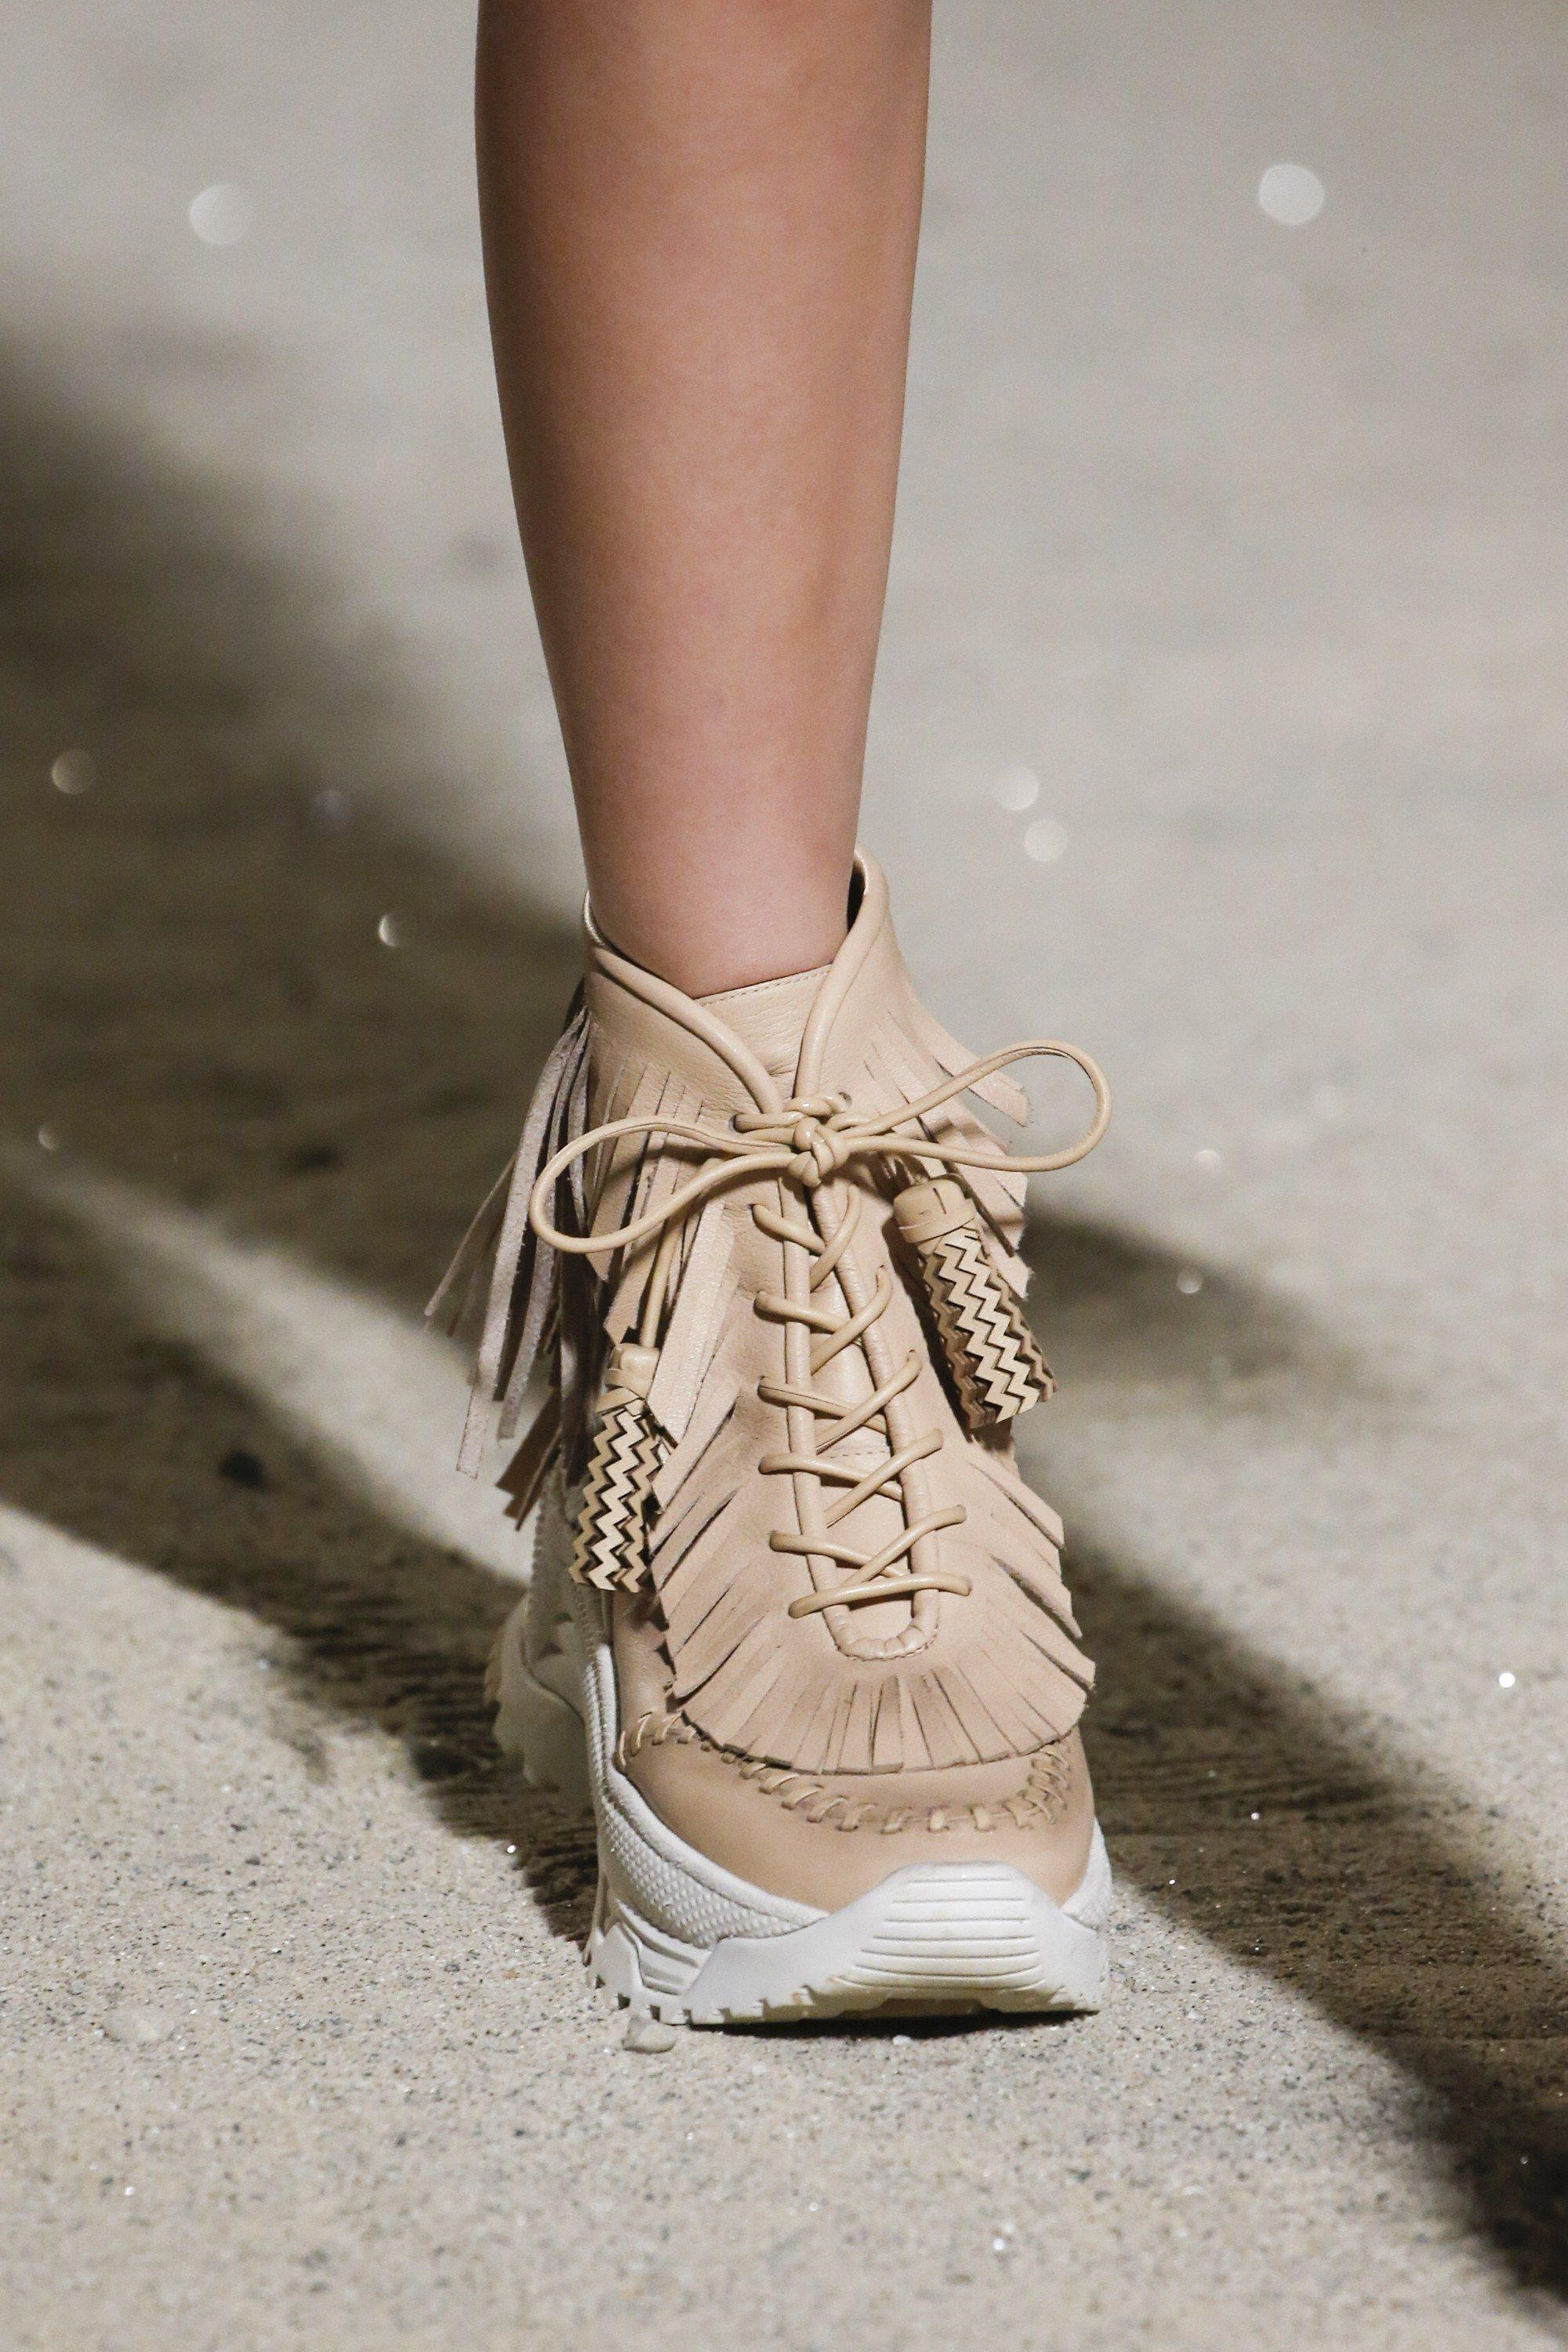 Image de fashion, sport, and shoes | chaussure in 2019